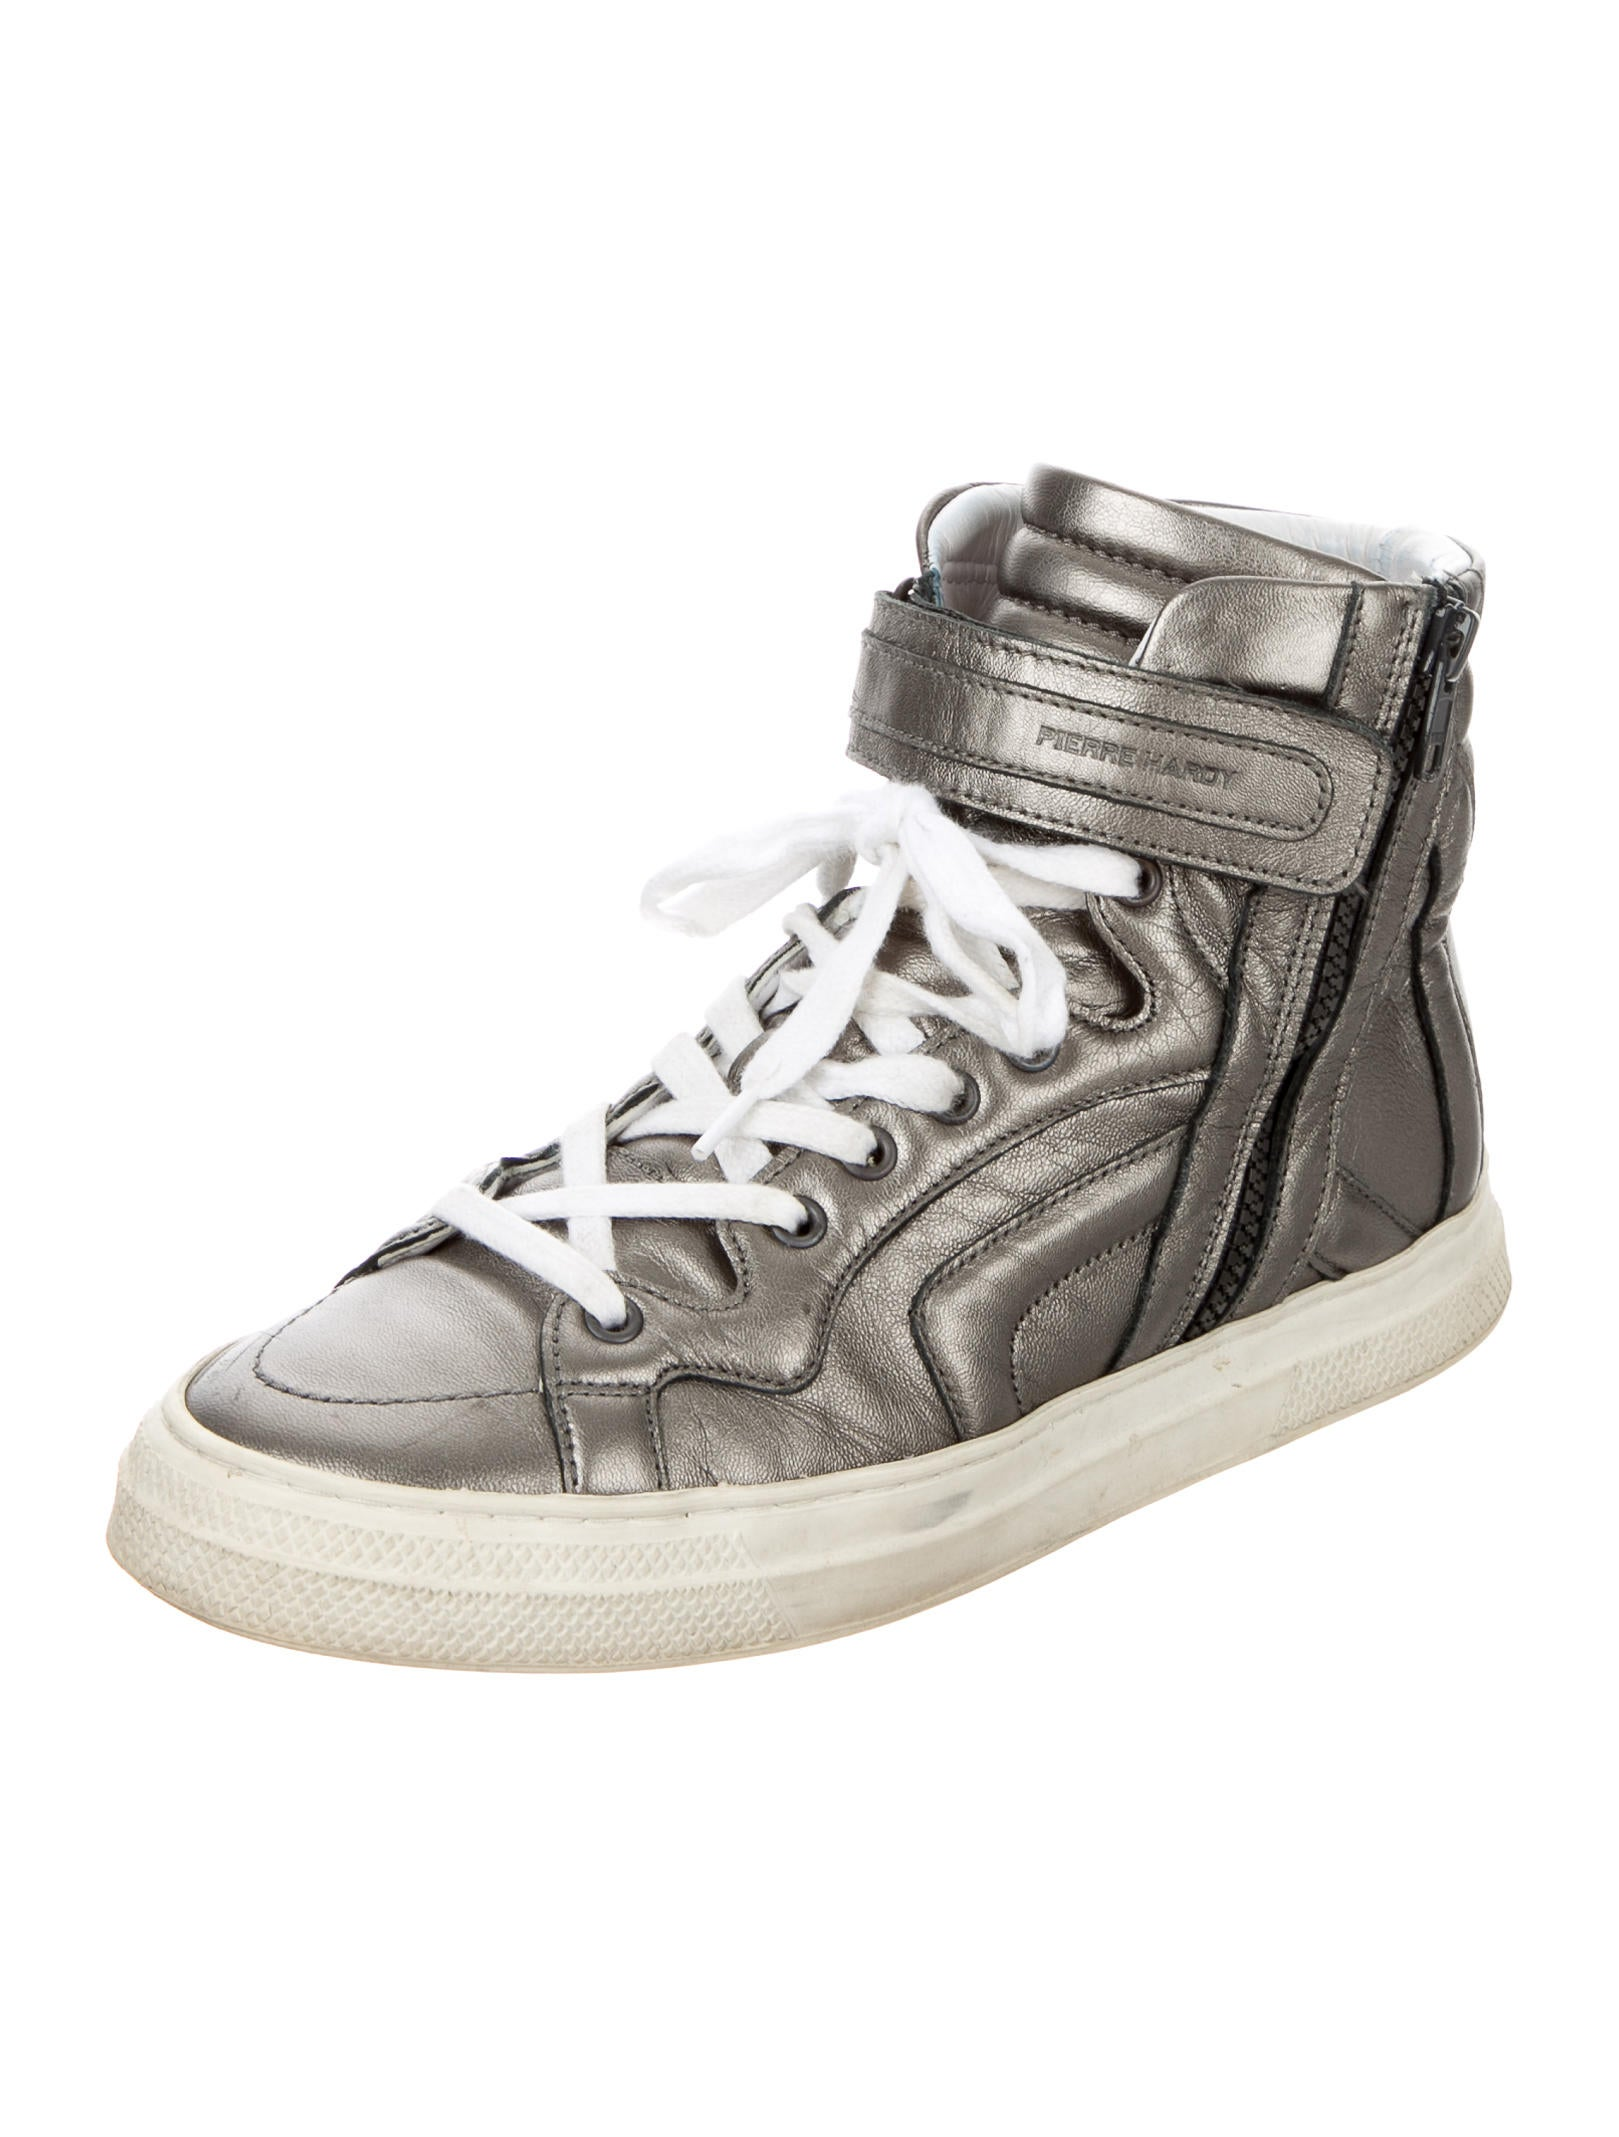 pierre hardy leather high top sneakers shoes pie23035 the realreal. Black Bedroom Furniture Sets. Home Design Ideas